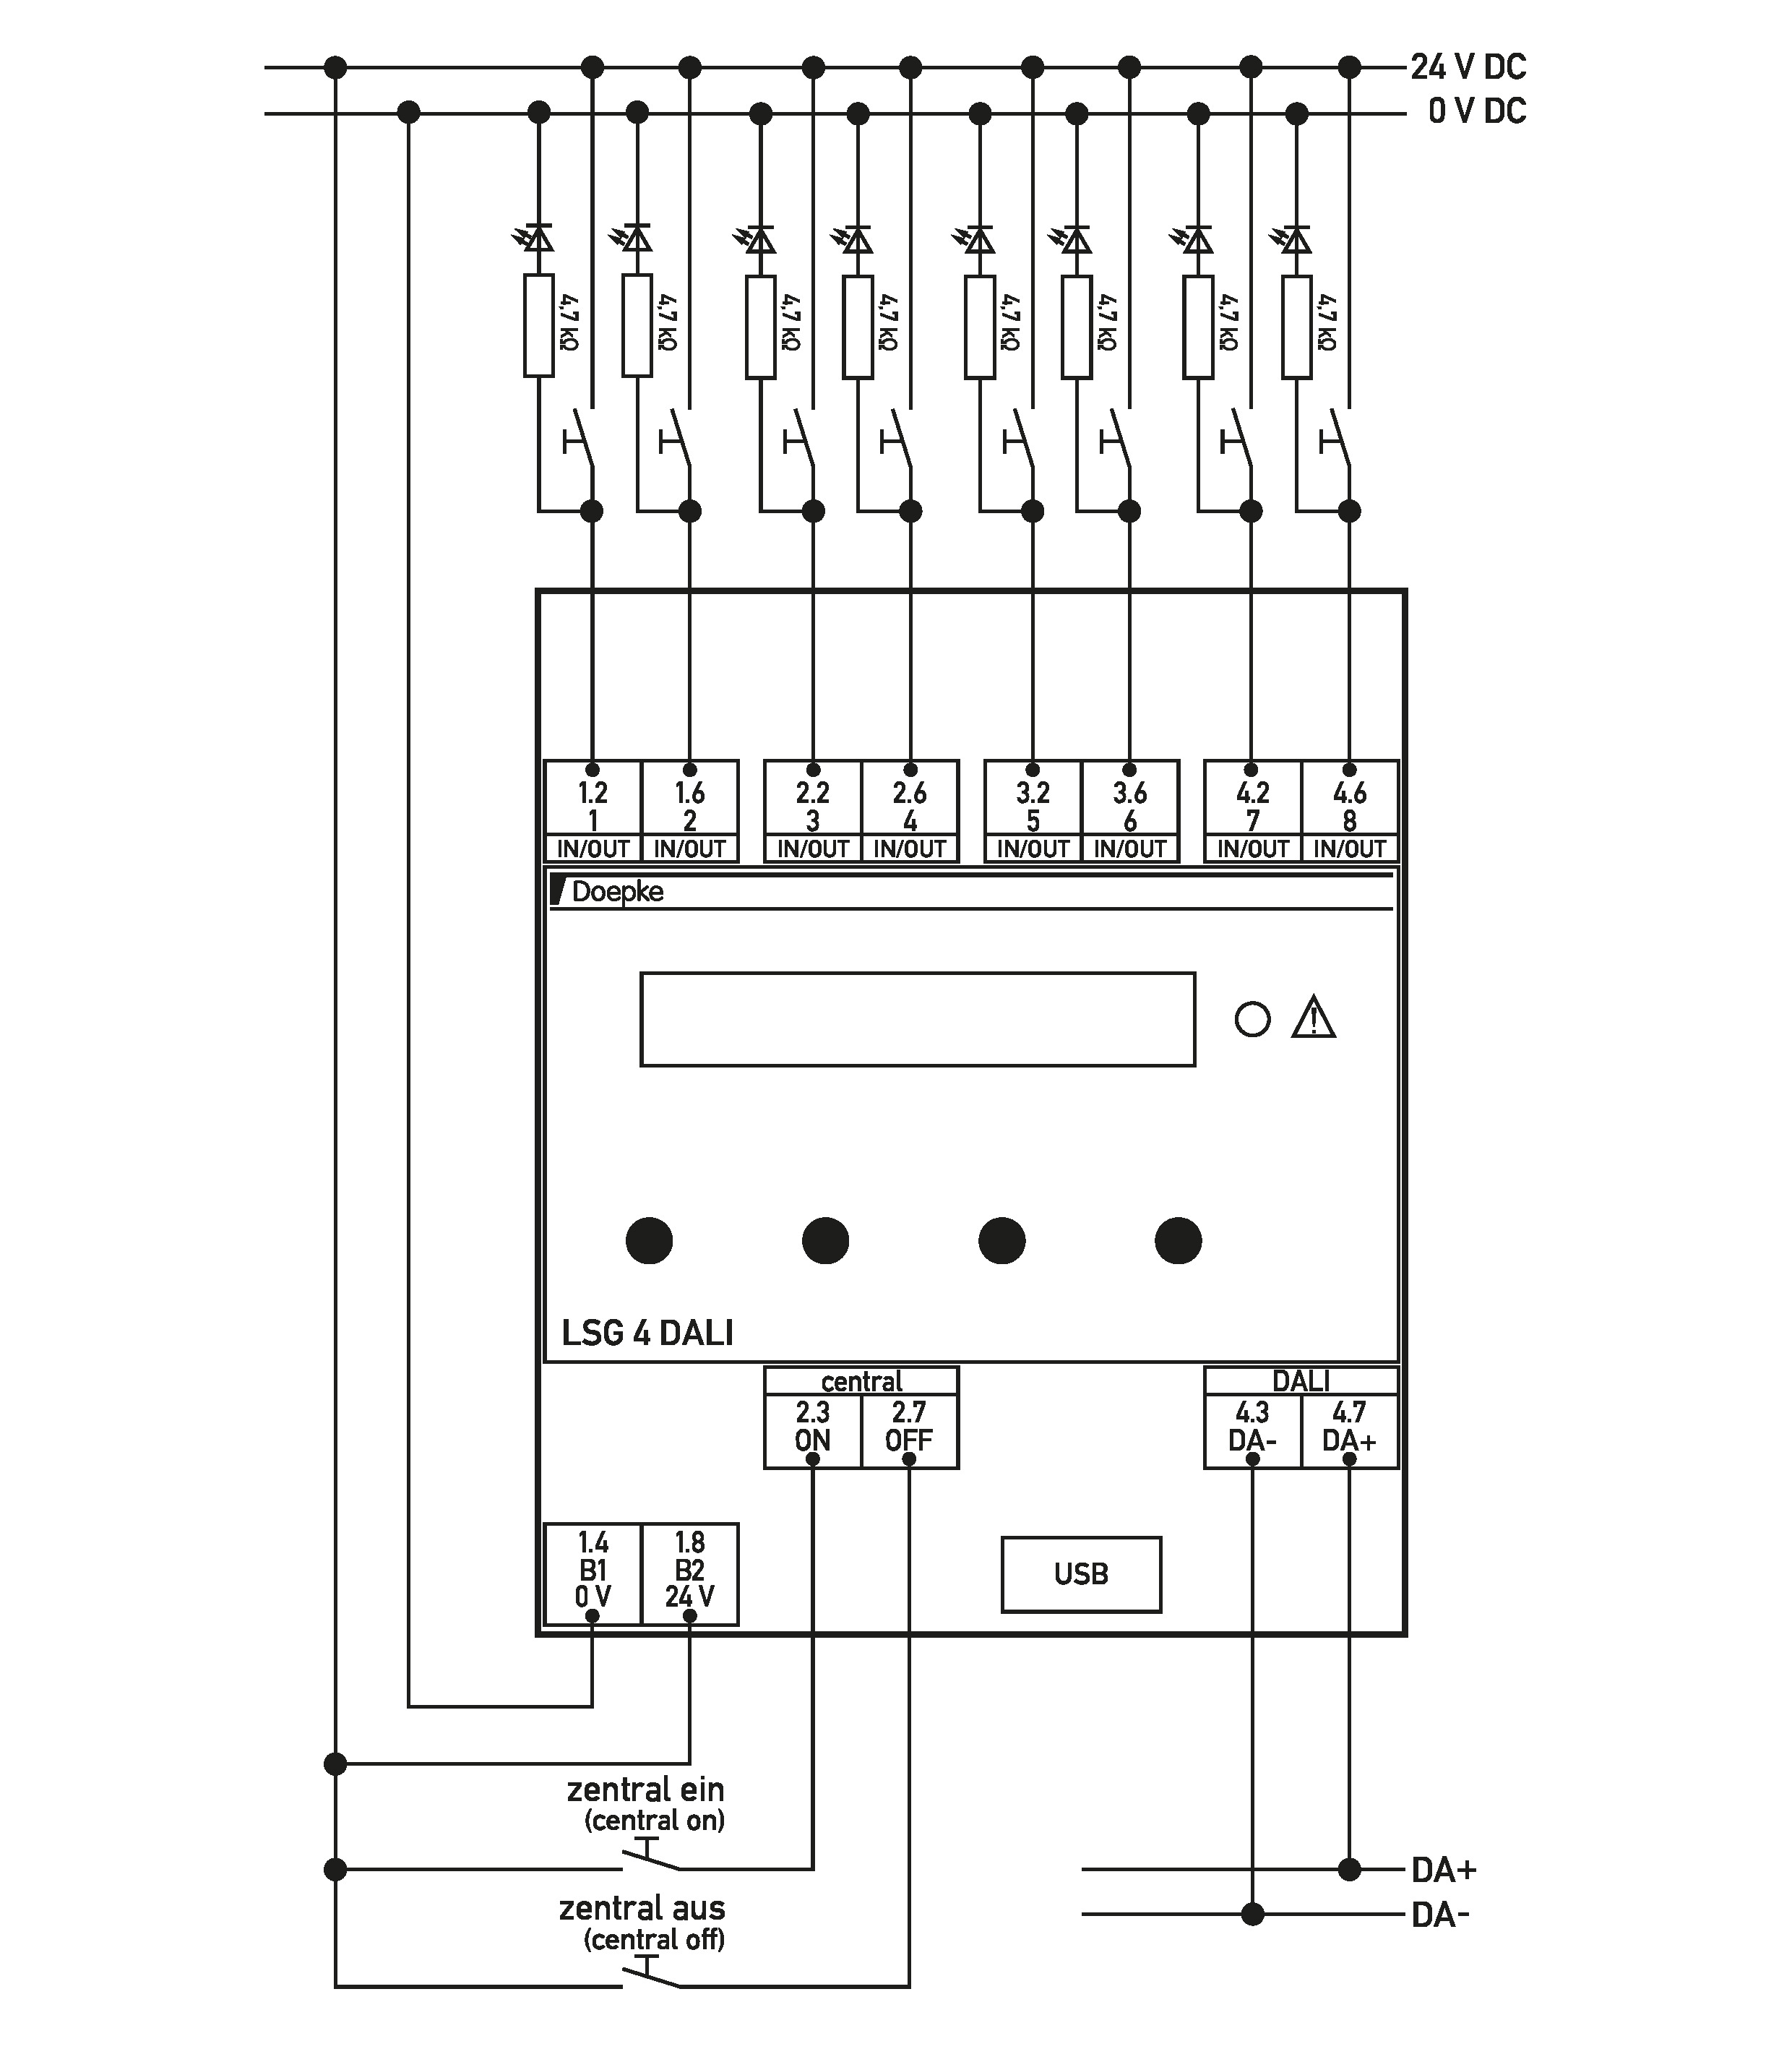 Doepke Lighting Control Devices Lsg 4 Dali Series Parallel Switch Wiring Diagram Switching Of Inputs Outputs